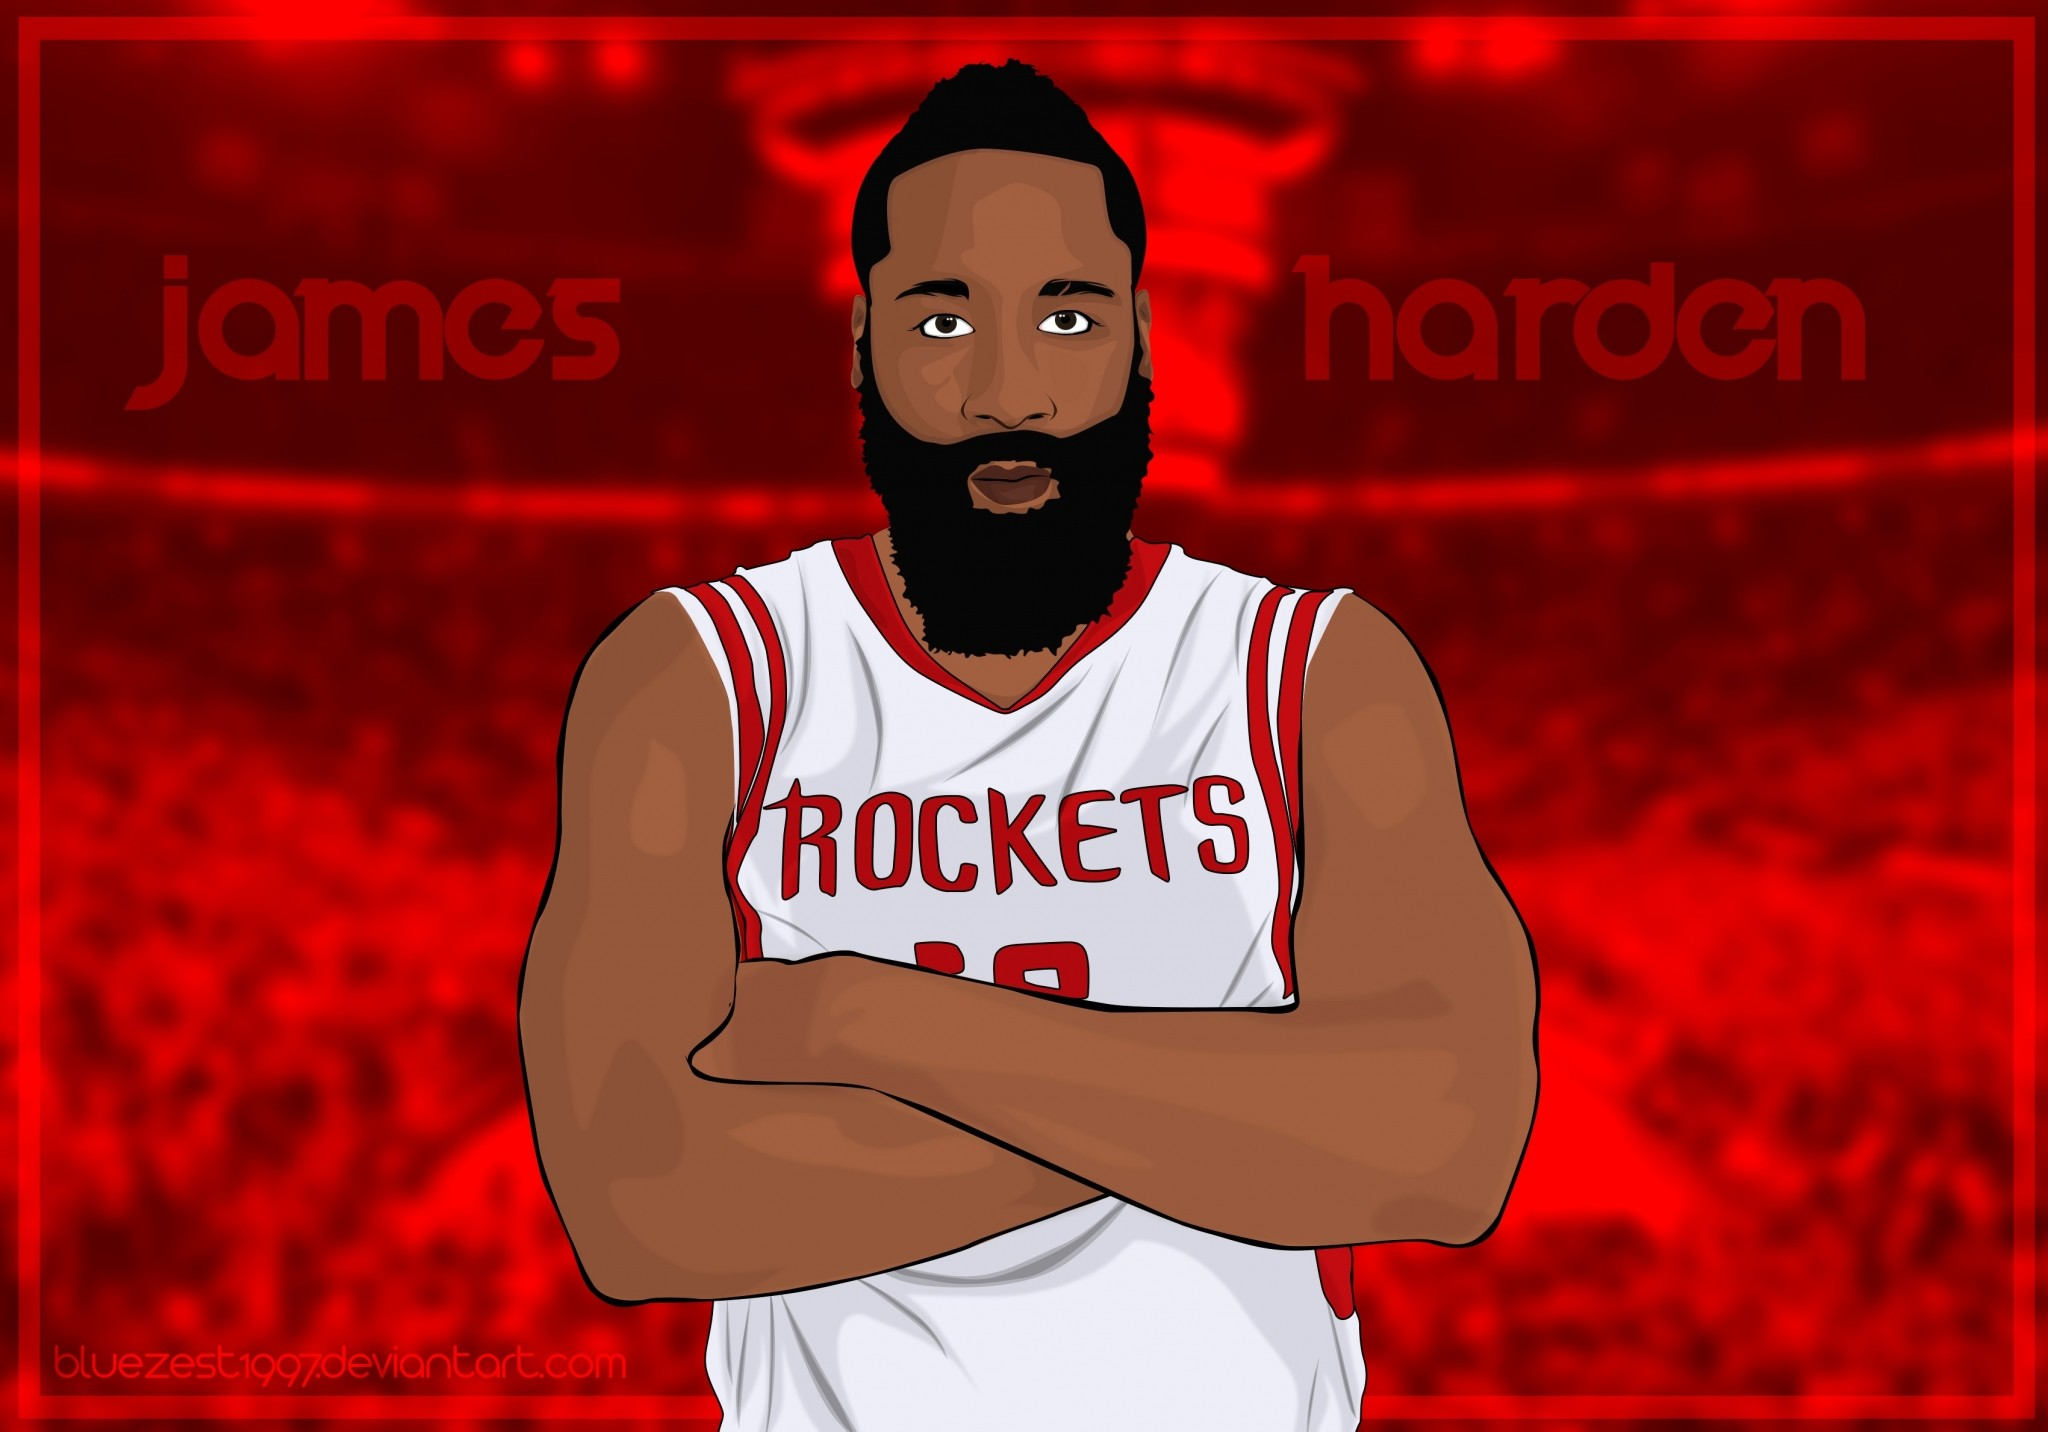 2048x1432 James Harden Wallpaper Free Desktop Wallpapers 2048x1298 1754